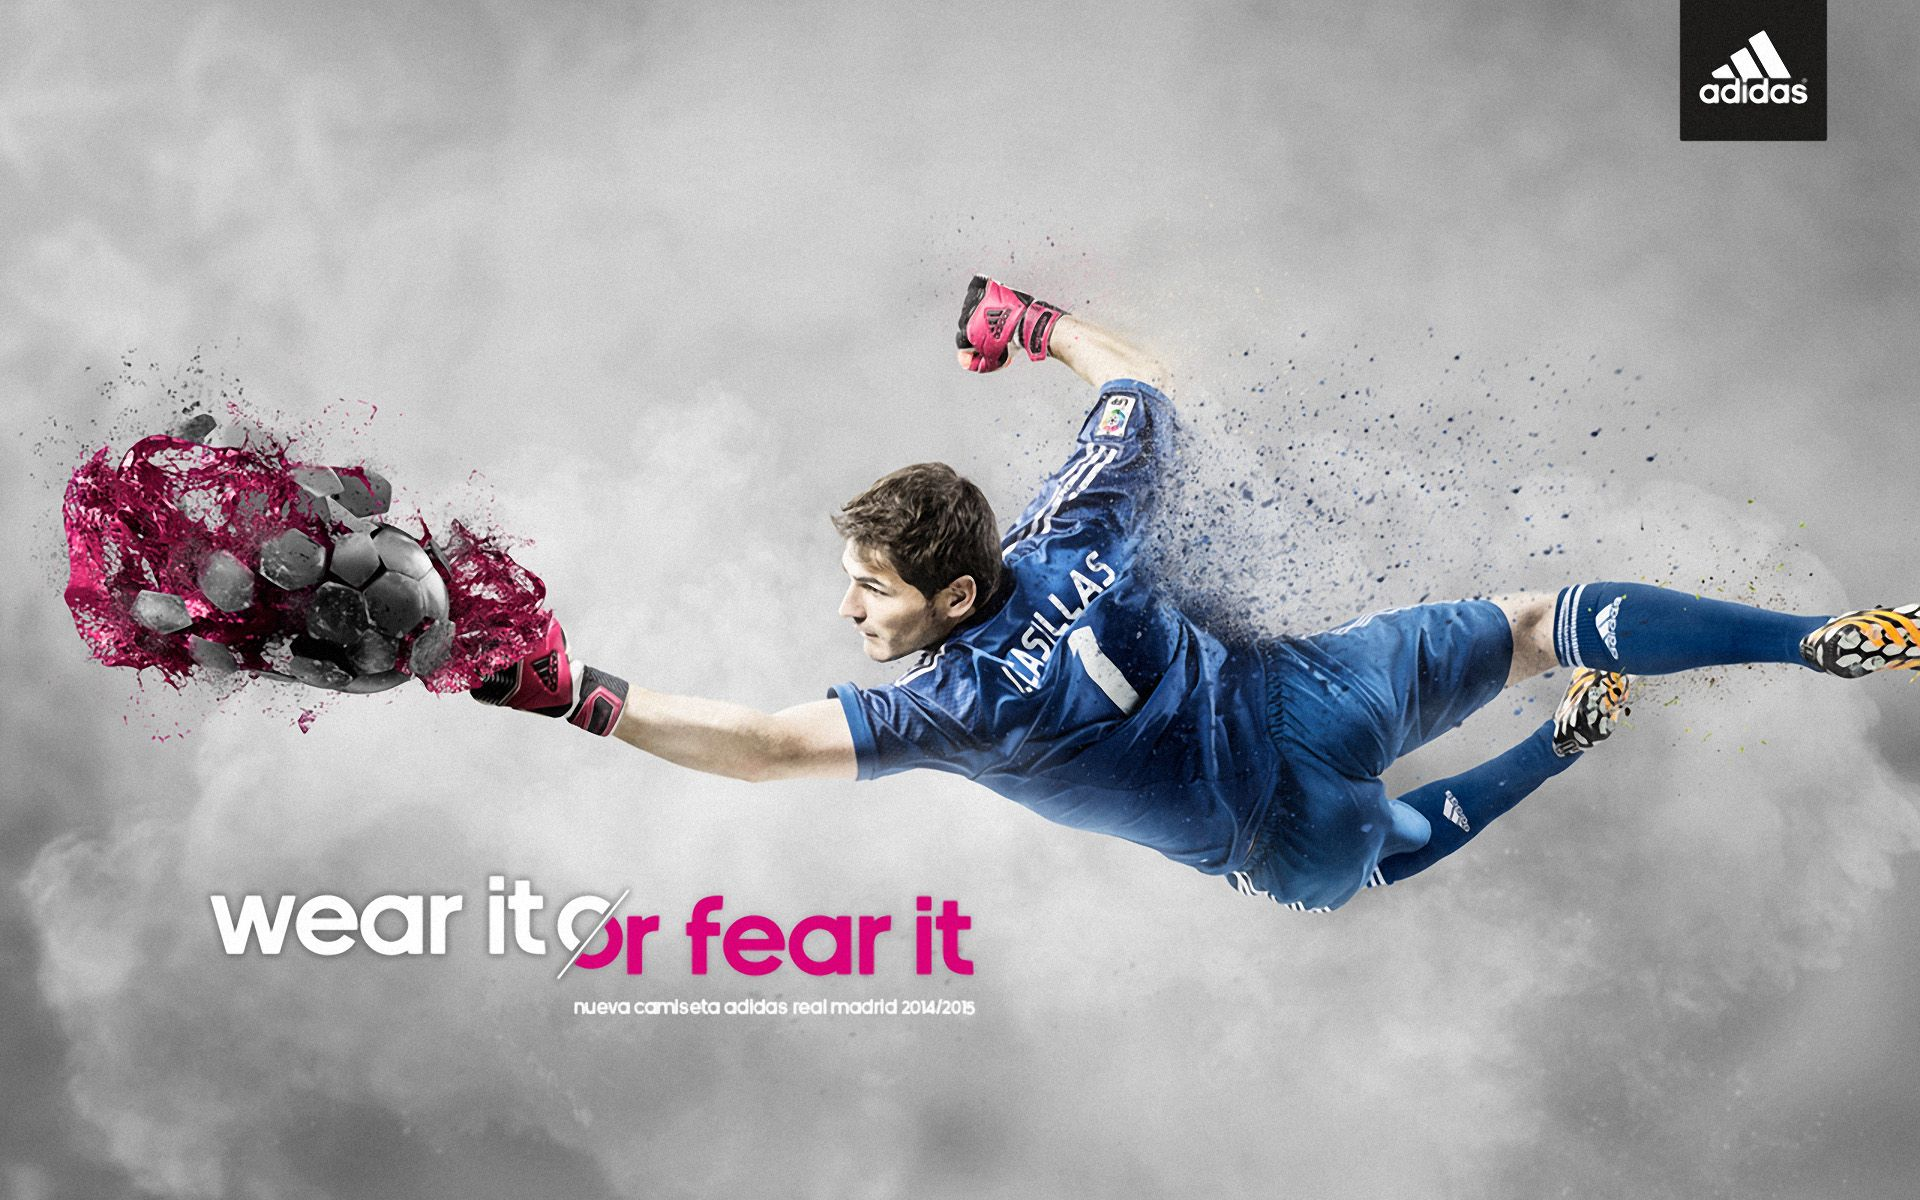 Must see Wallpaper High Quality Adidas - 028a26a0dcf7cd956c25613ded097b65  Pic_426047.jpg